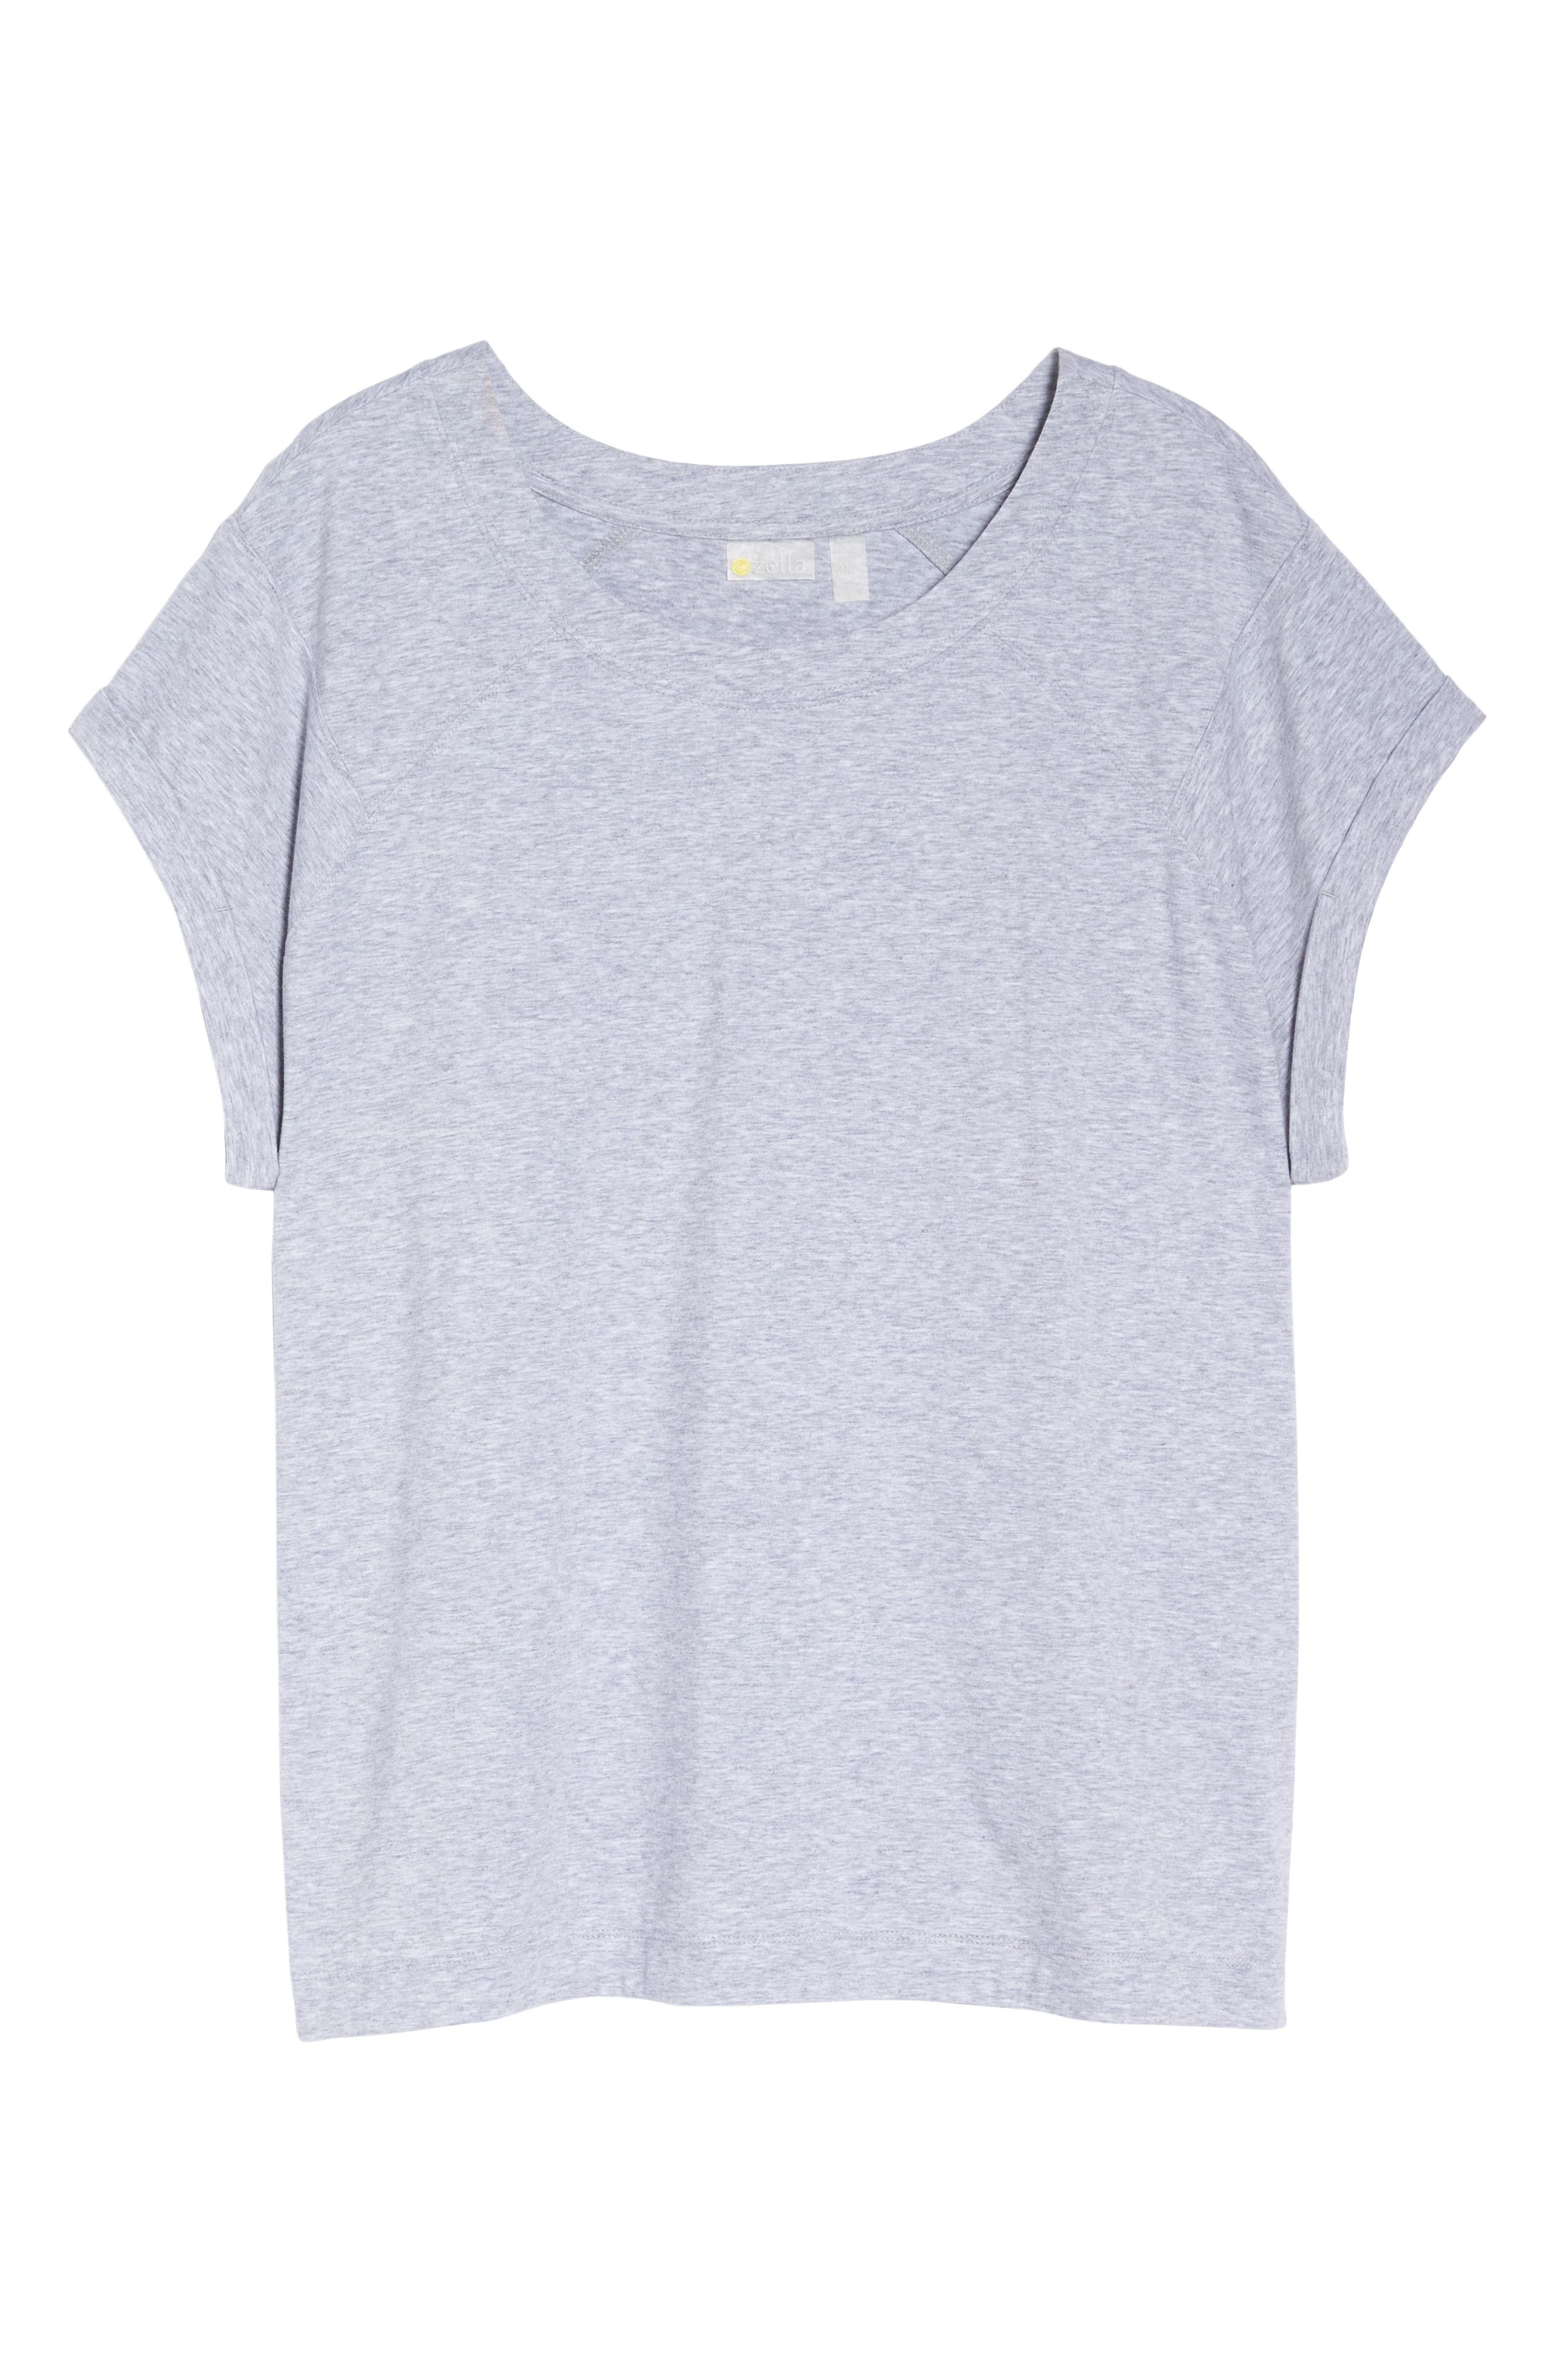 Karly Tee,                             Alternate thumbnail 7, color,                             030